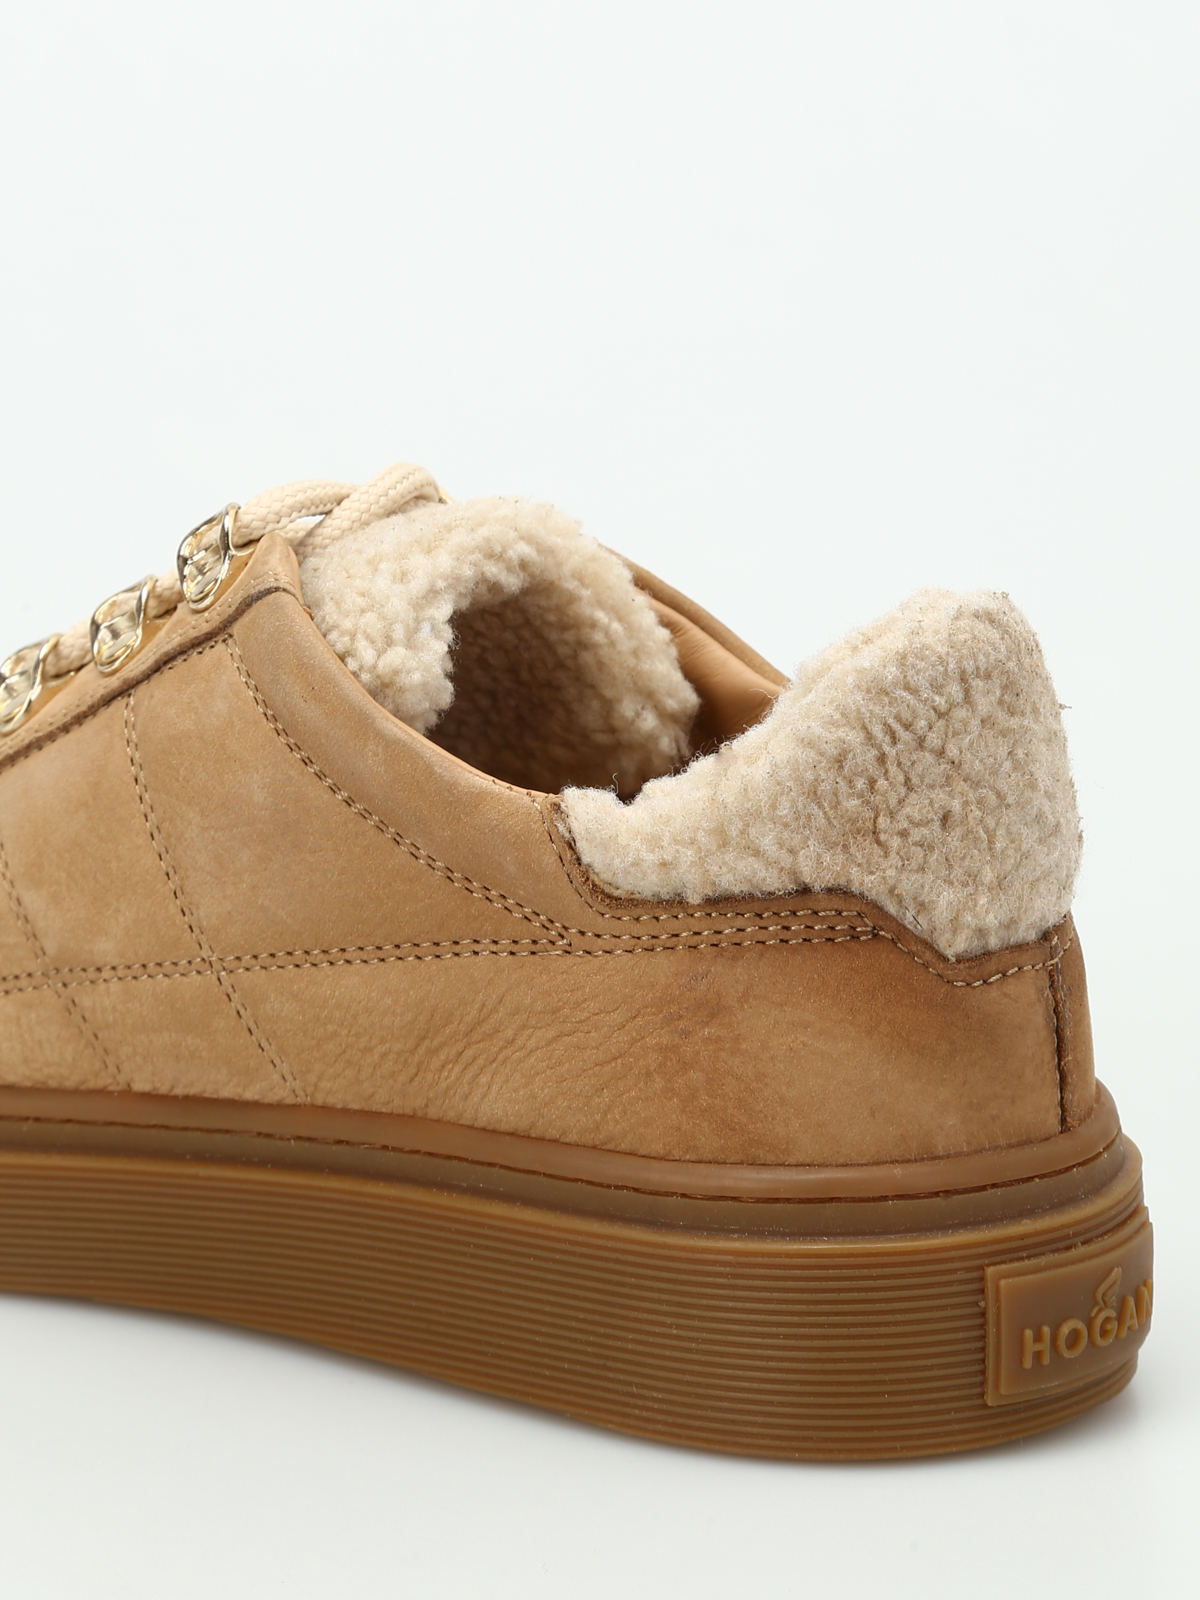 Trainers Hogan - H340 nubuck and shearling sneakers ...